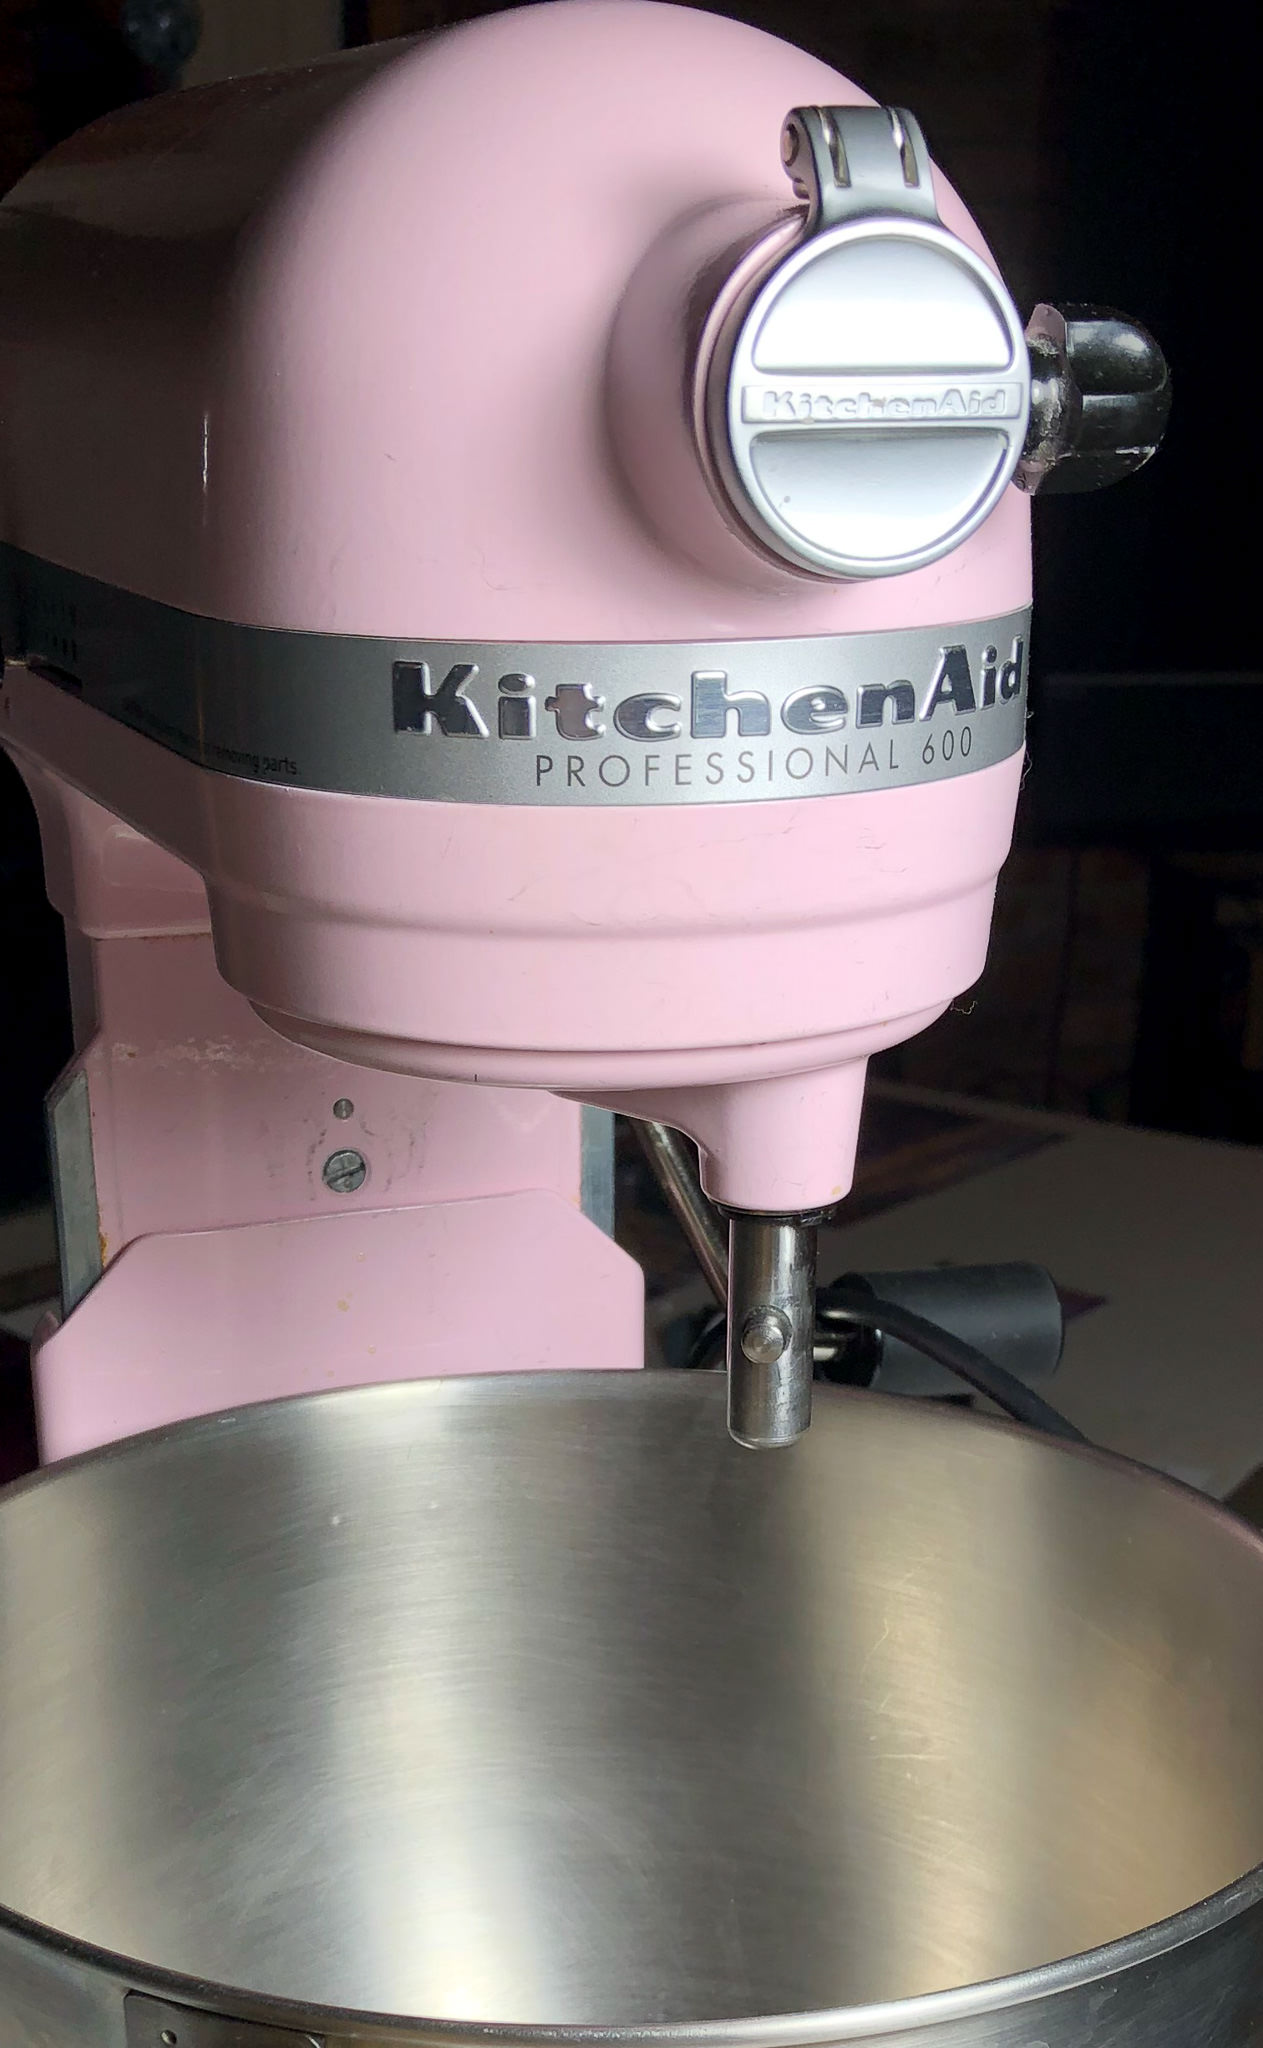 Kitchenaid Pro 600 Repair All The Pages Are My Days